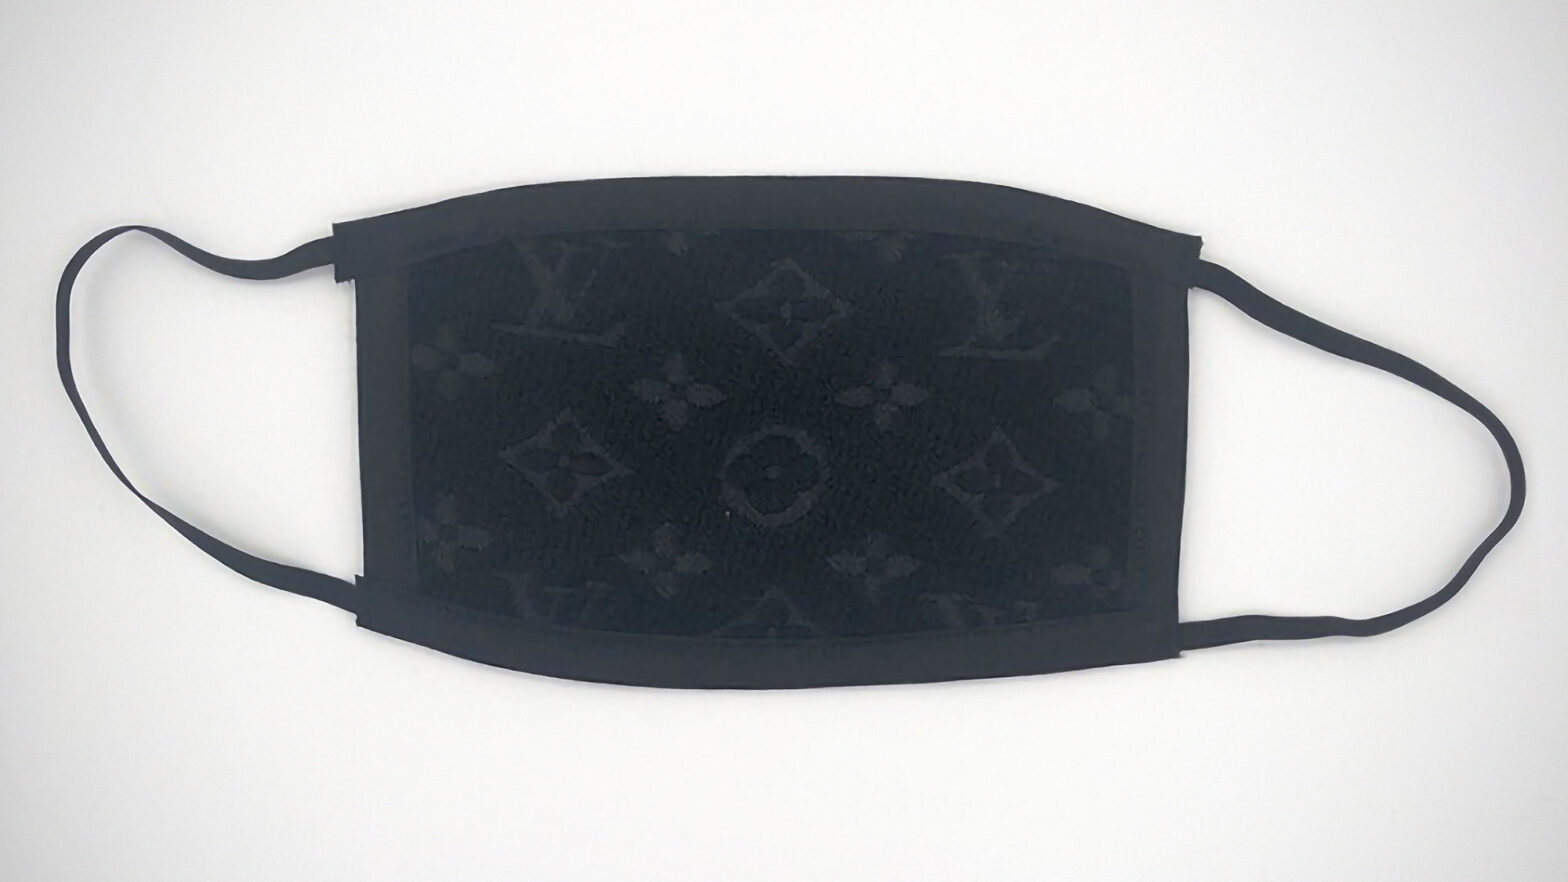 Authentic Louis Vuitton Handmade Face Mask